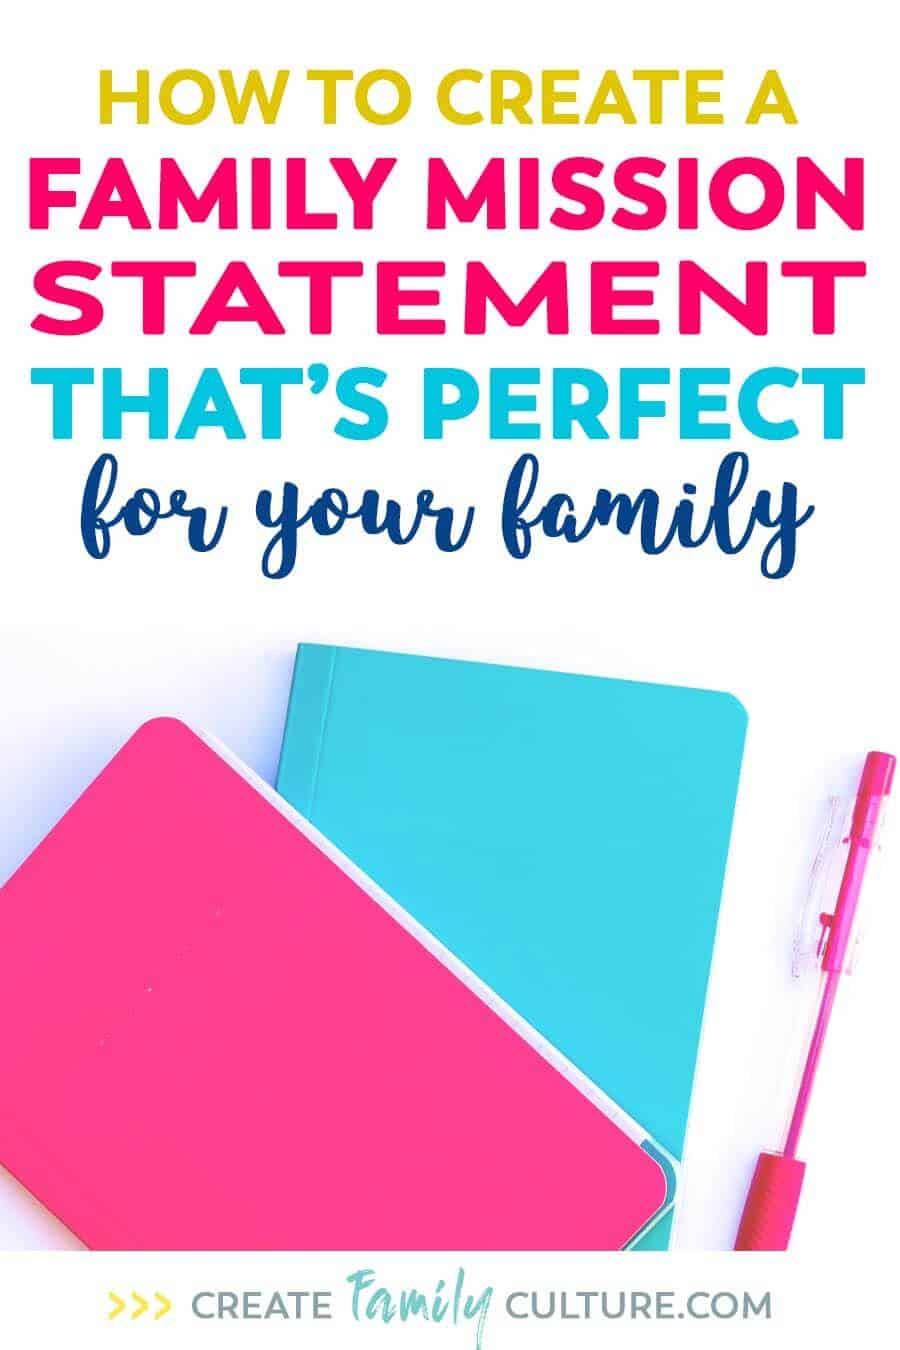 How to Create a Family Mission Statement that's perfect for your family. Intentional parenting and goal setting | Raising godly children #christianparenting #familytips